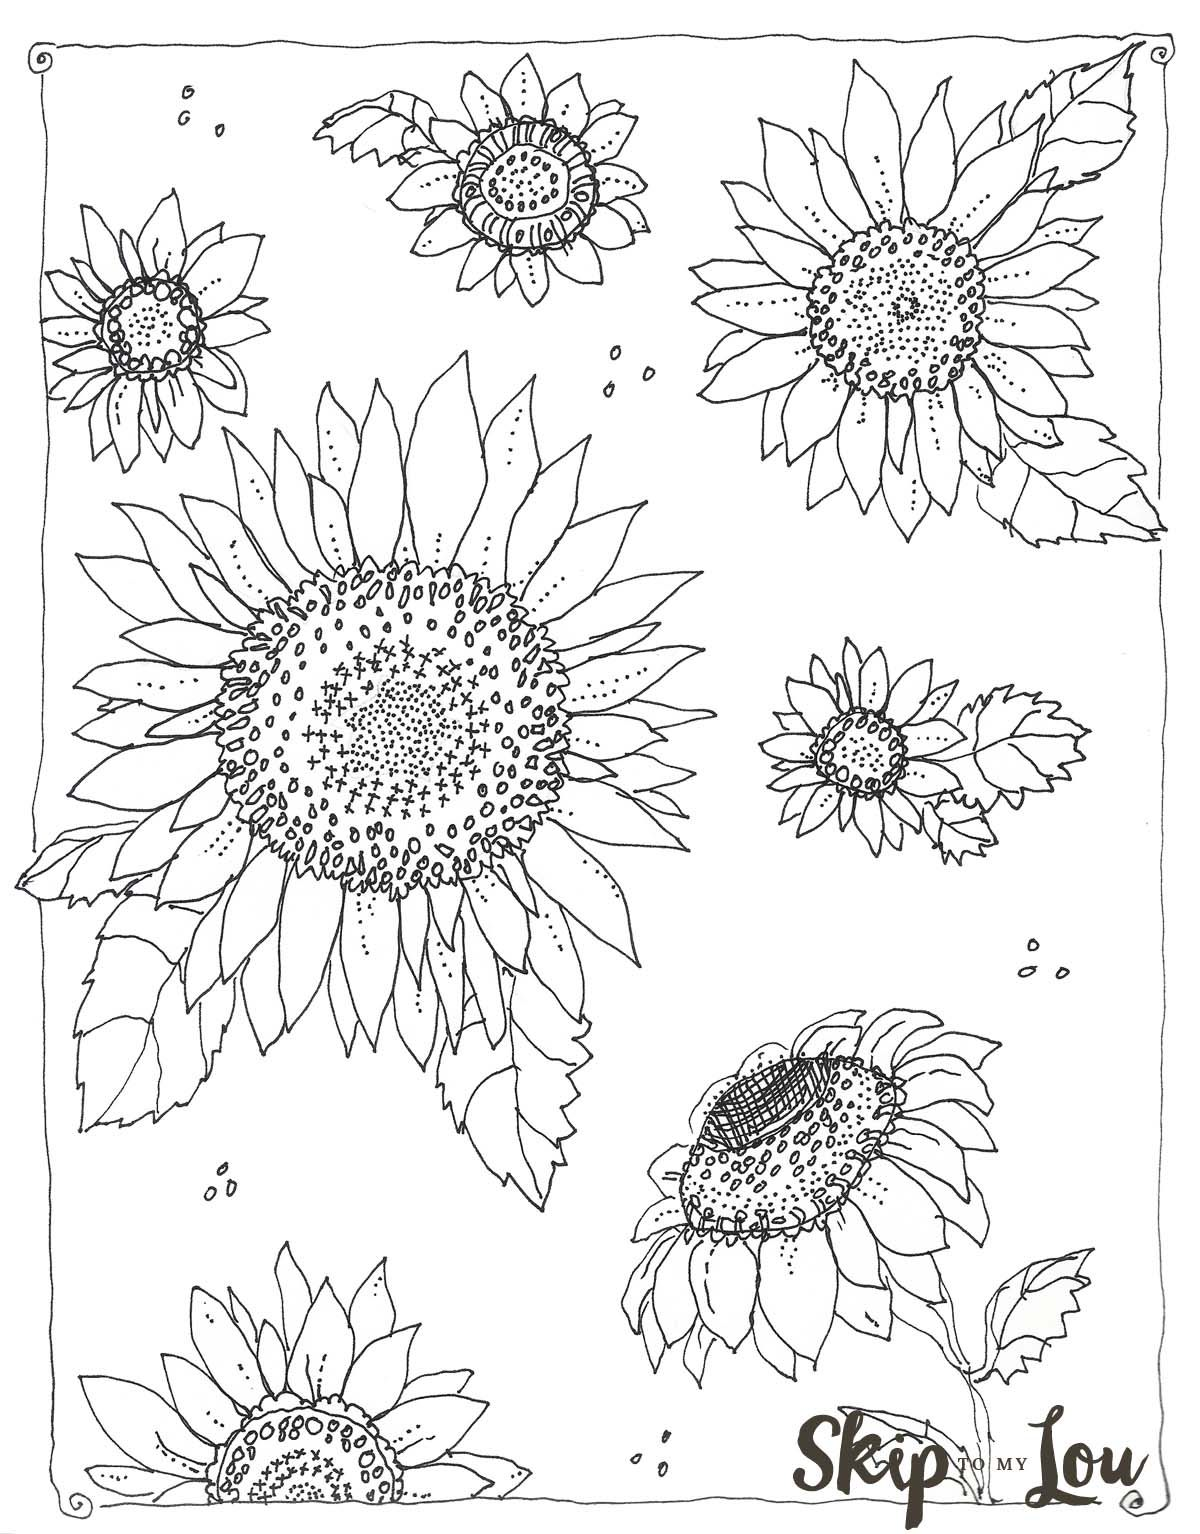 Kansas Day Free Sunflower Coloring Page Sunflower Coloring Pages